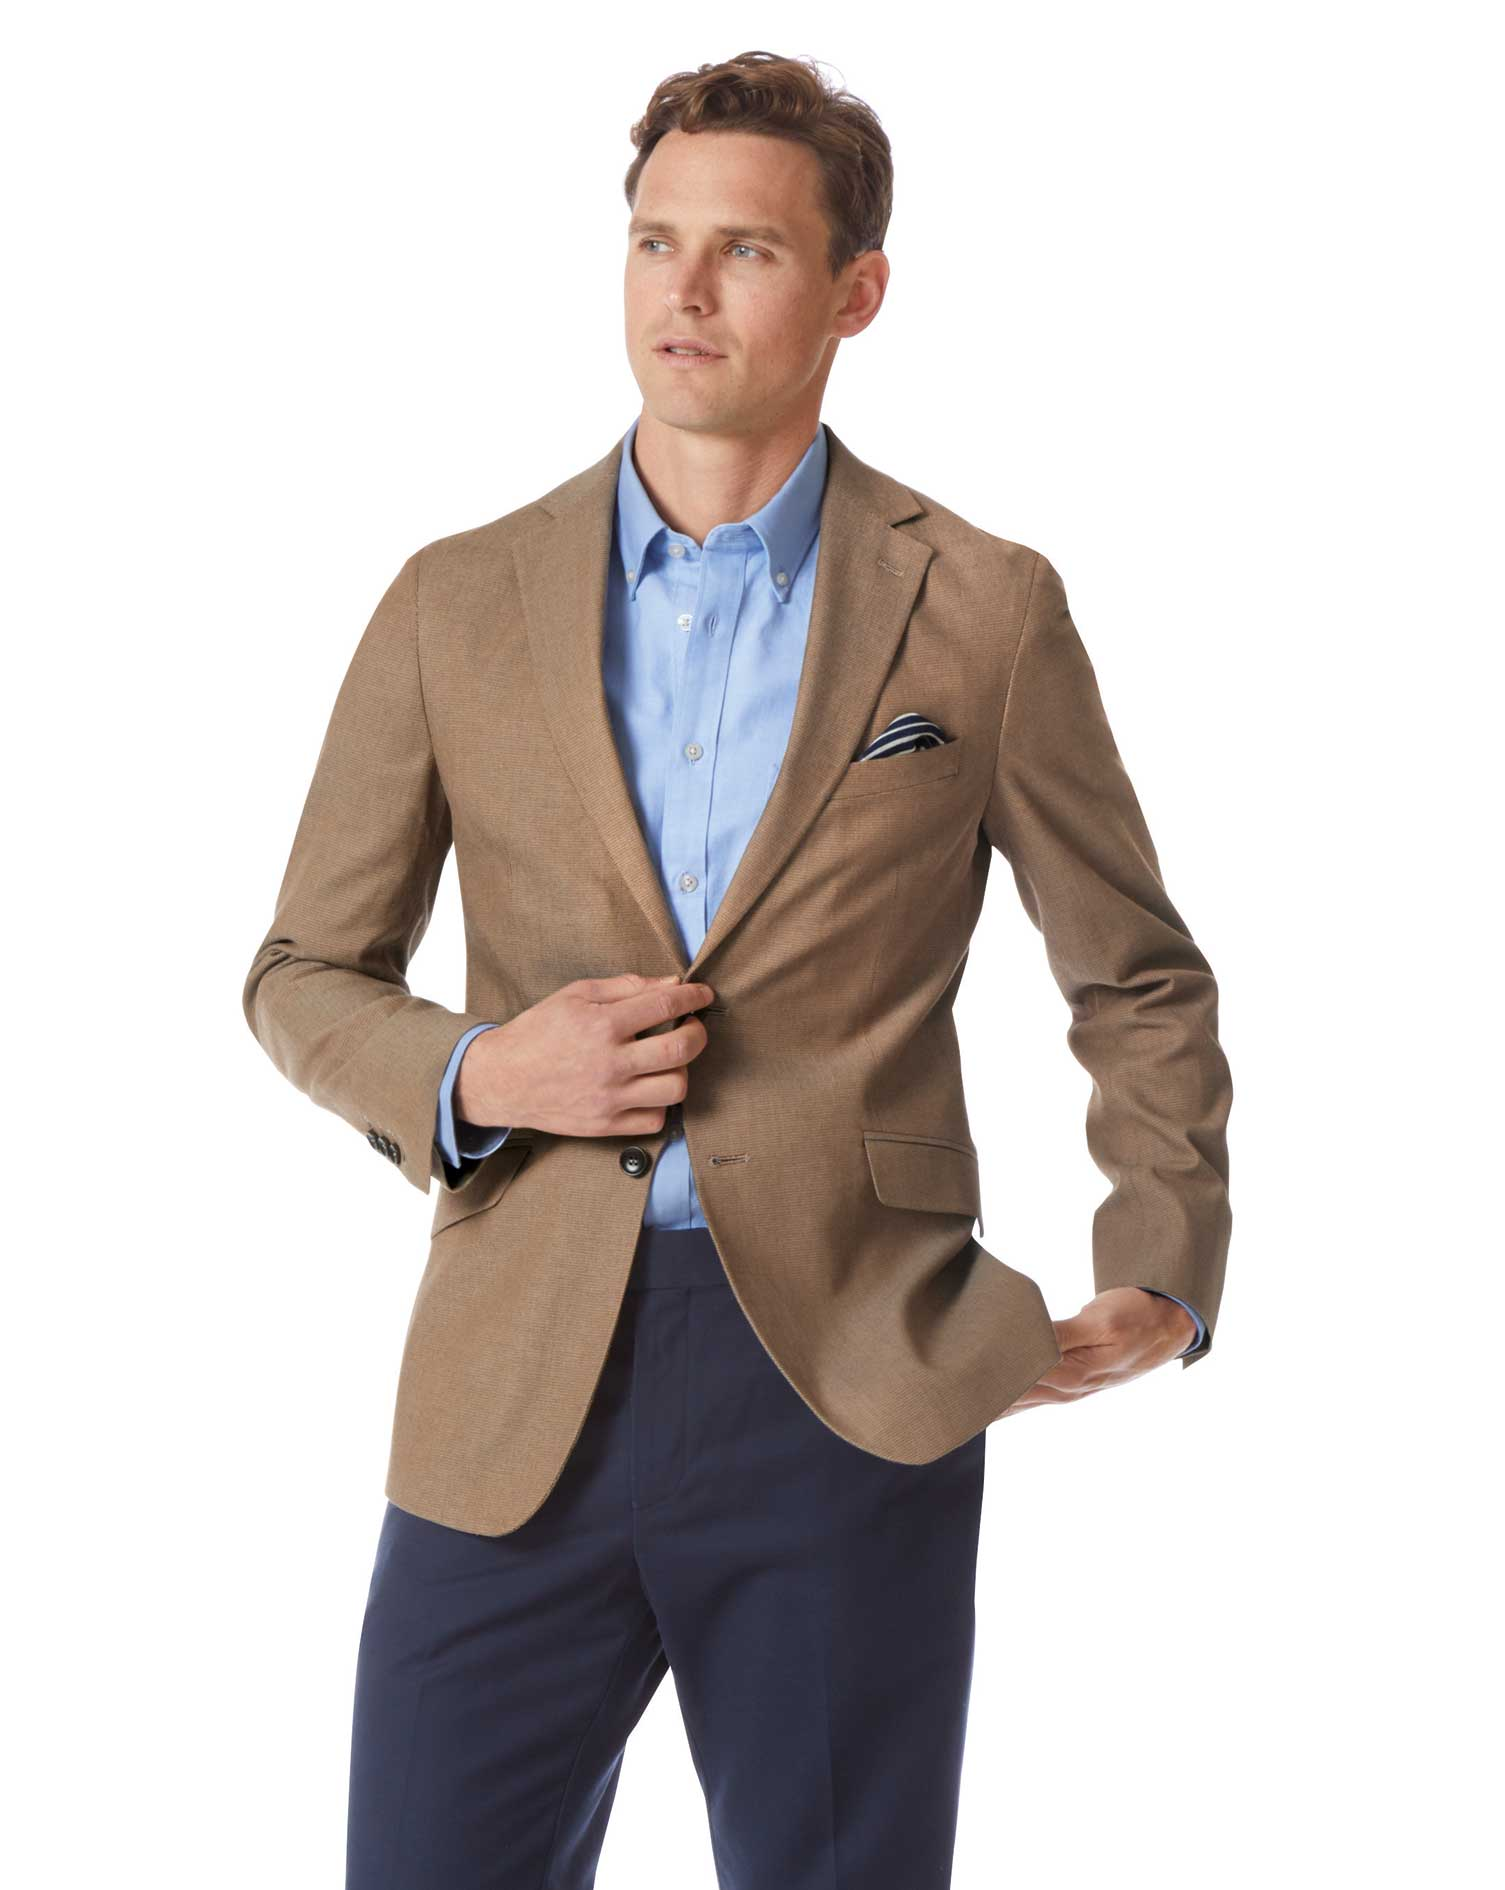 Slim Fit Tan Textured Stretch Cotton Jacket Size 42 Short by Charles Tyrwhitt